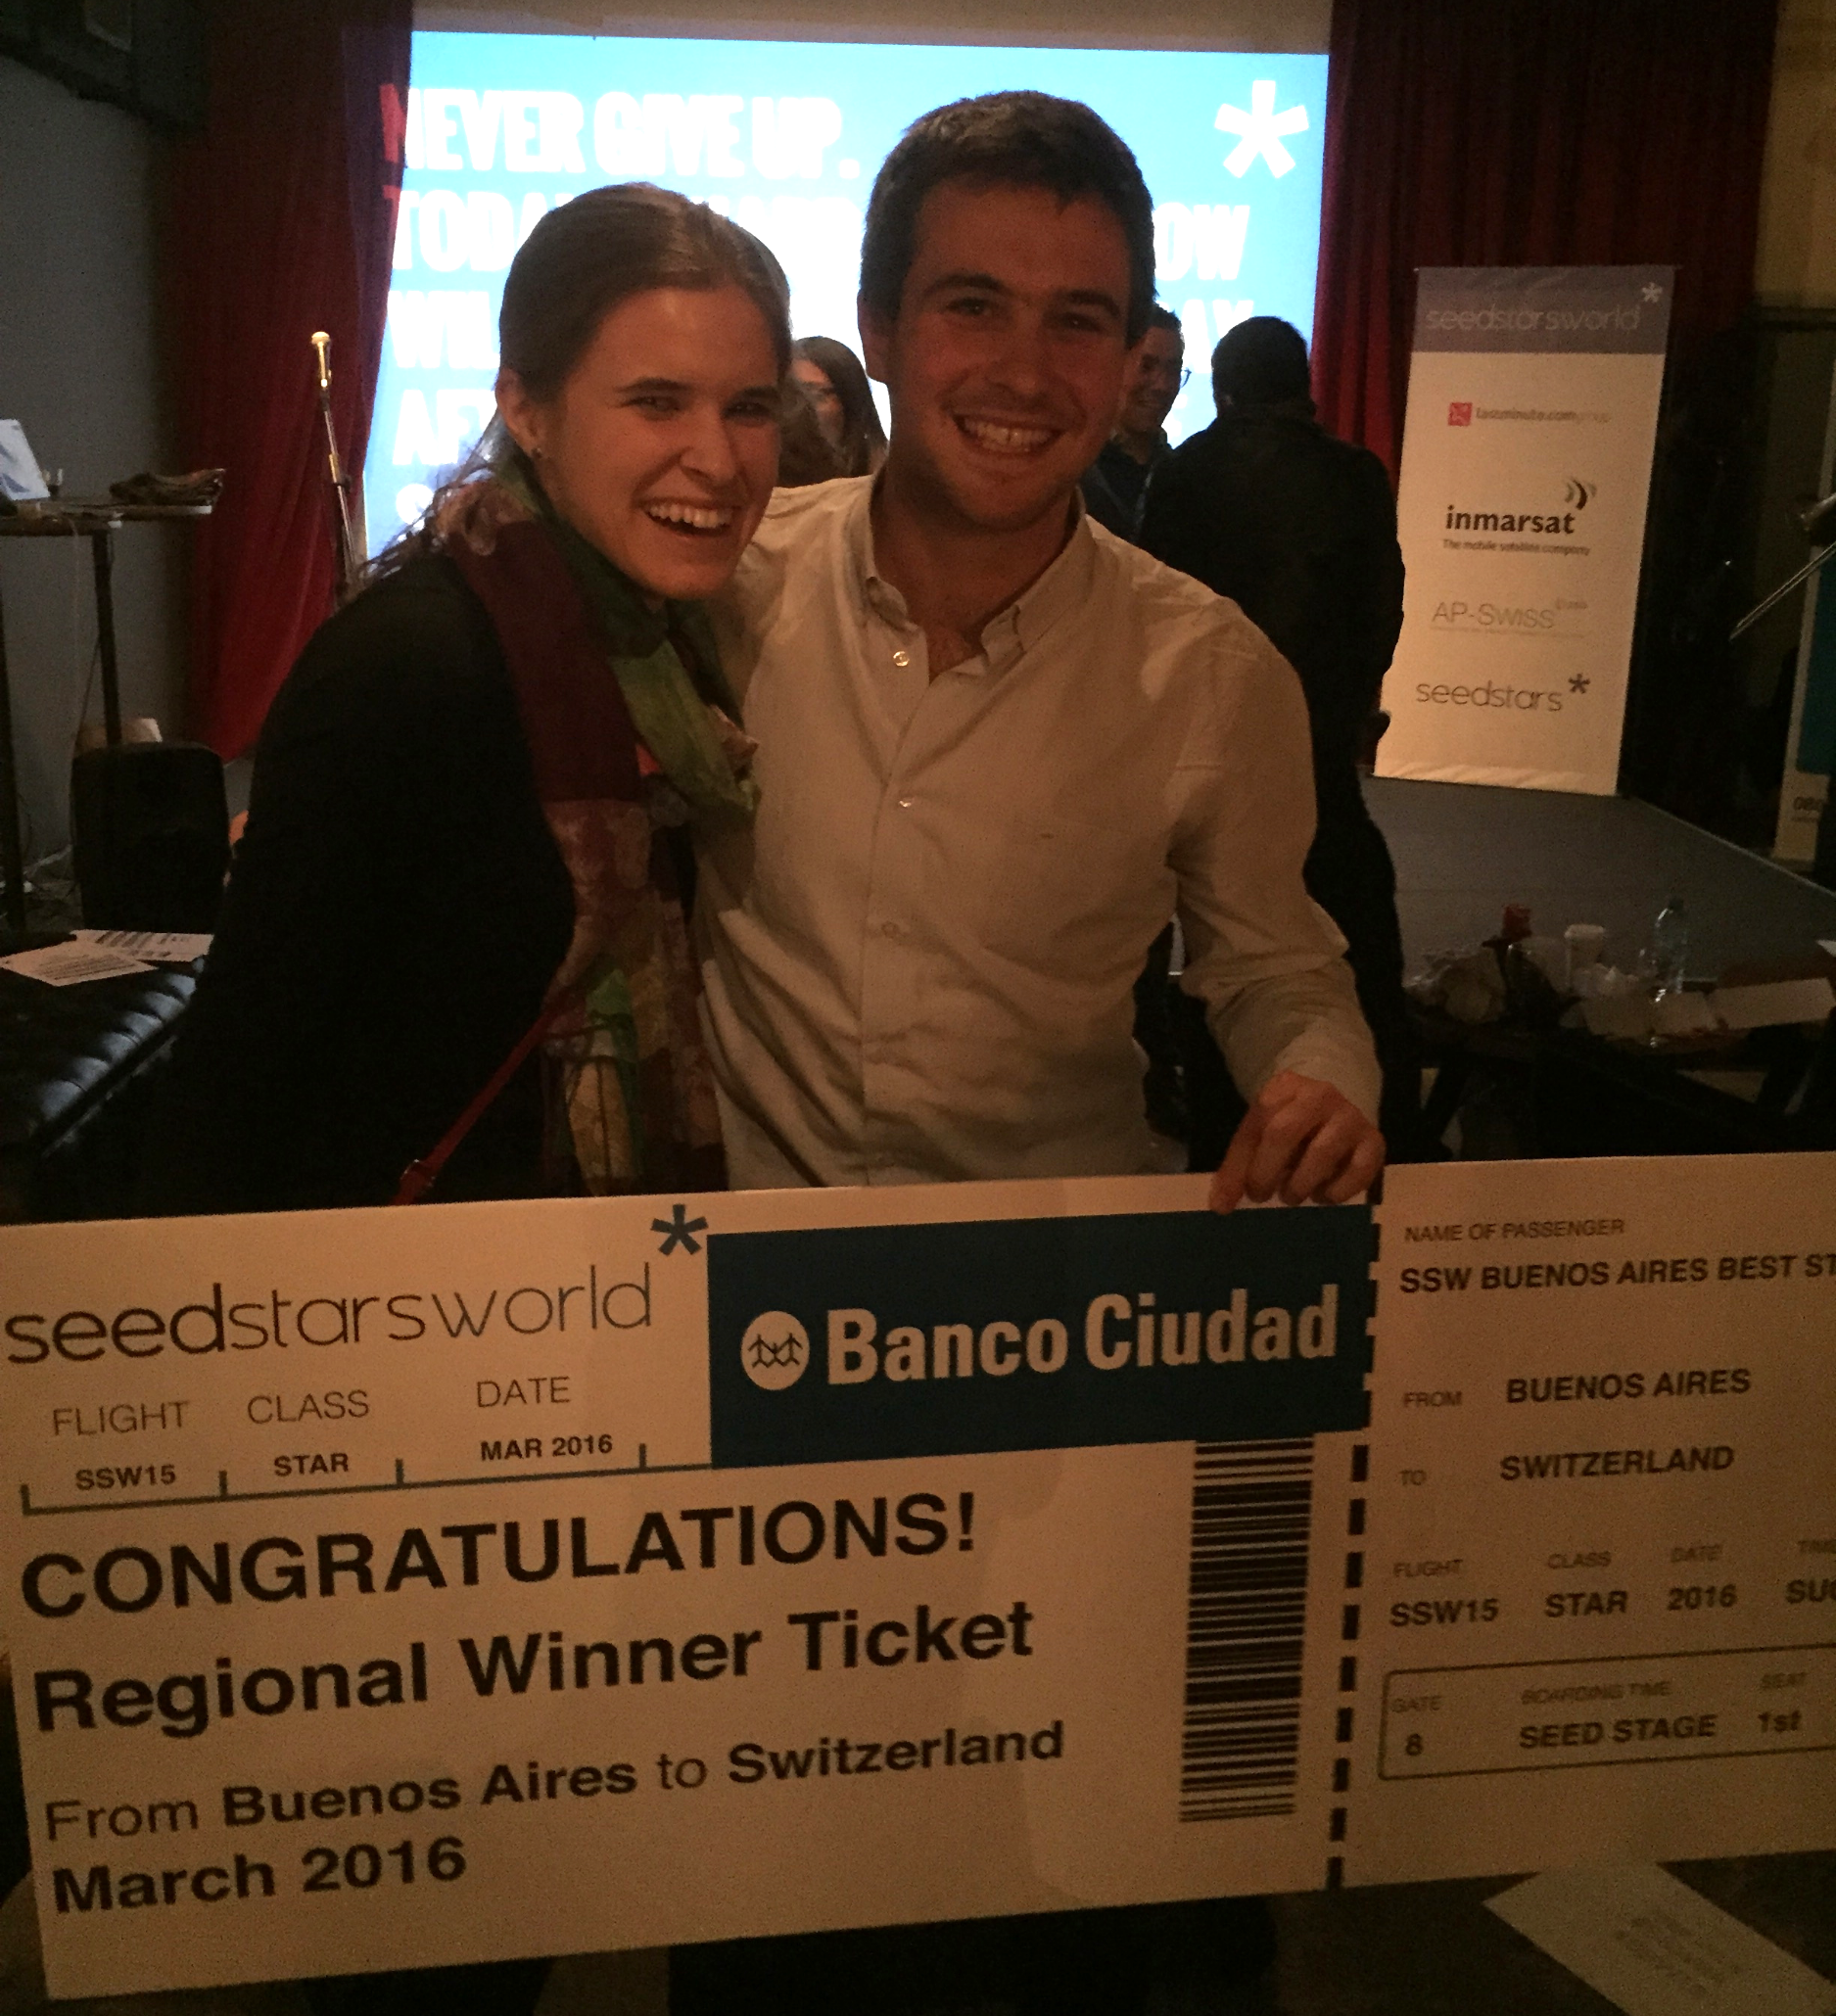 Kaity Ersek with Lucas Glustman, CEO & Founder of Flimper. Flimper just won the SeedStars Competition in Buenos Aires, Argentina.